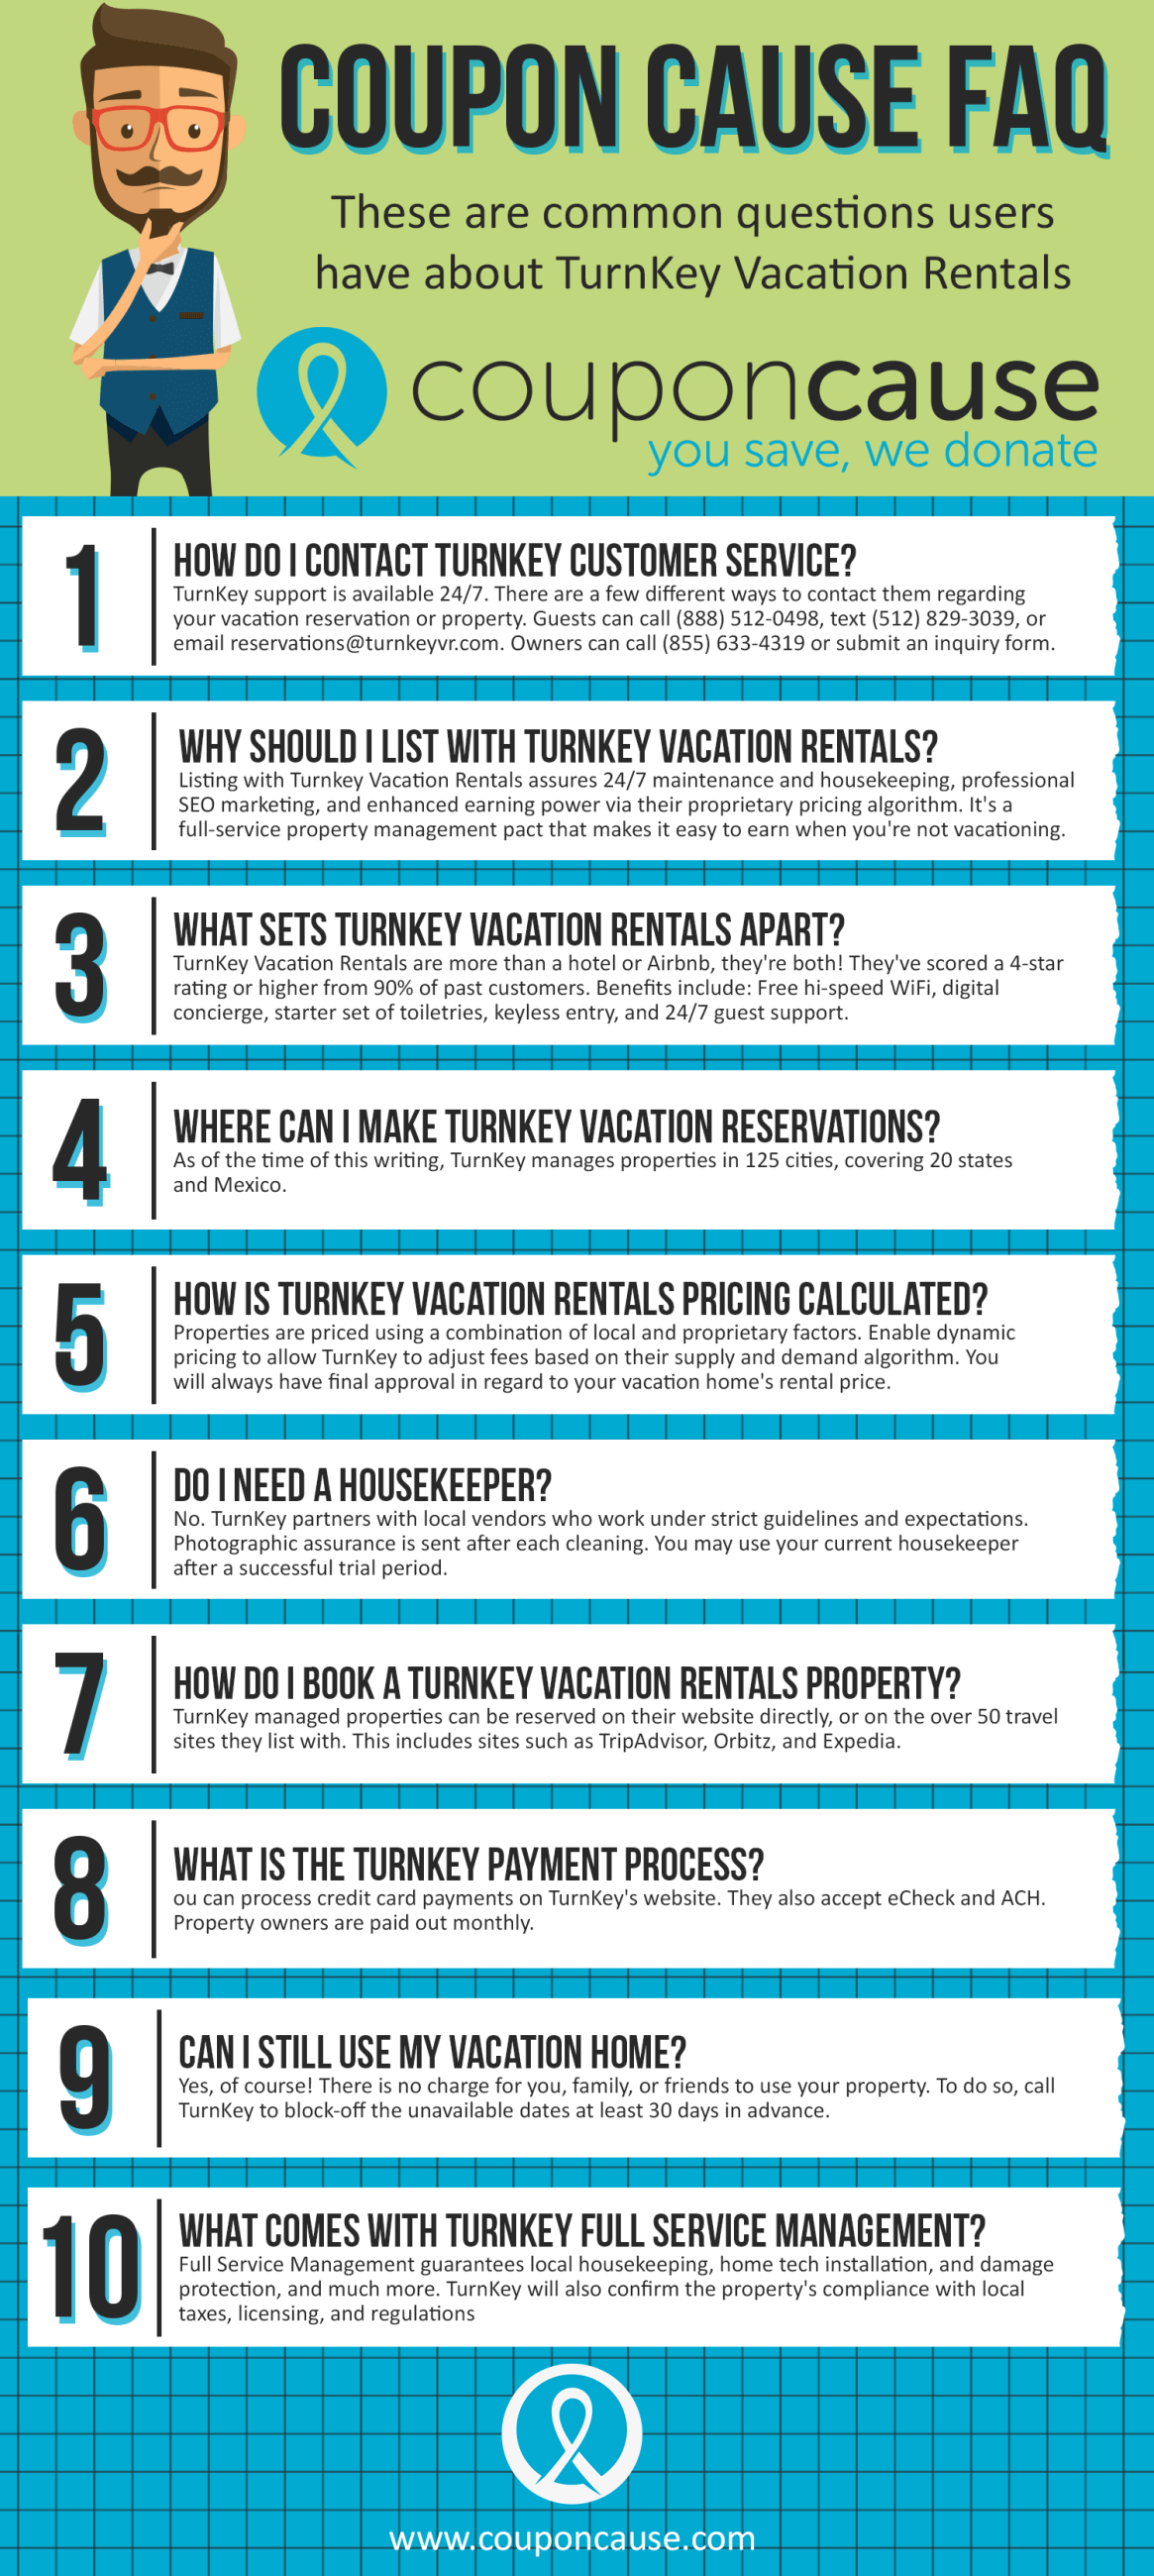 Turnkey Vacation Rentals Coupon Cause FAQ (C.C. FAQ)